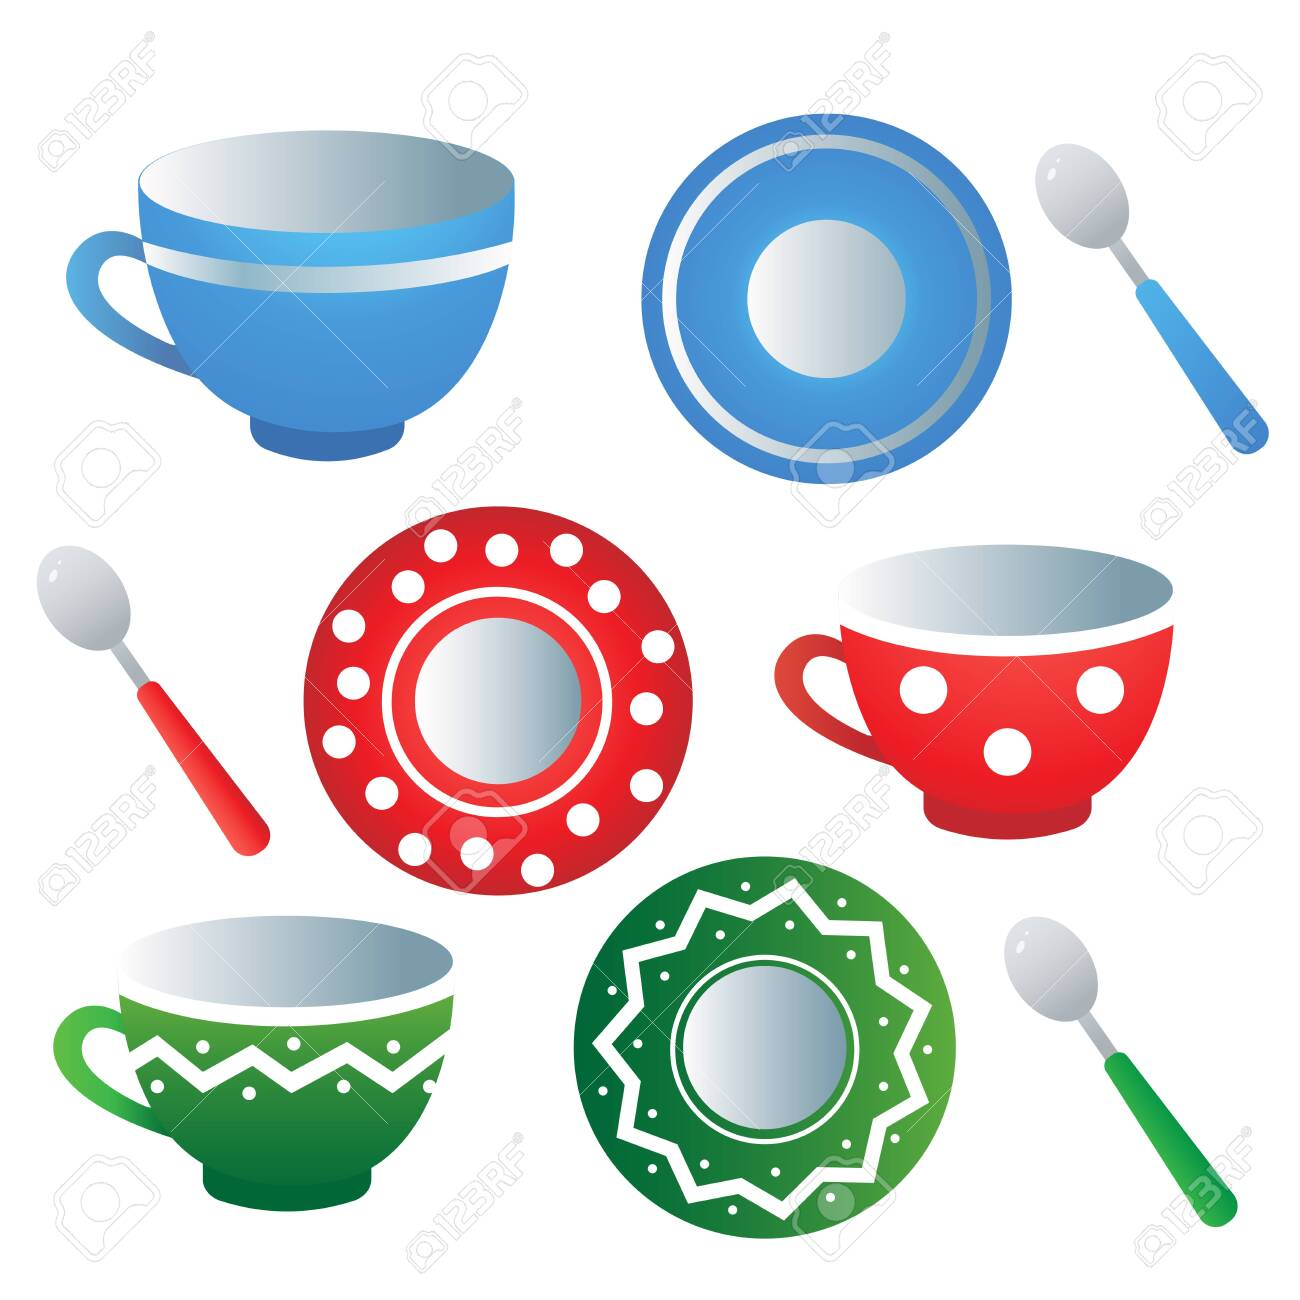 Kitchen tea set. Color images of colorful saucers, spoons and cups on white background. Dishes and crockery. Vector illustration. - 133966538